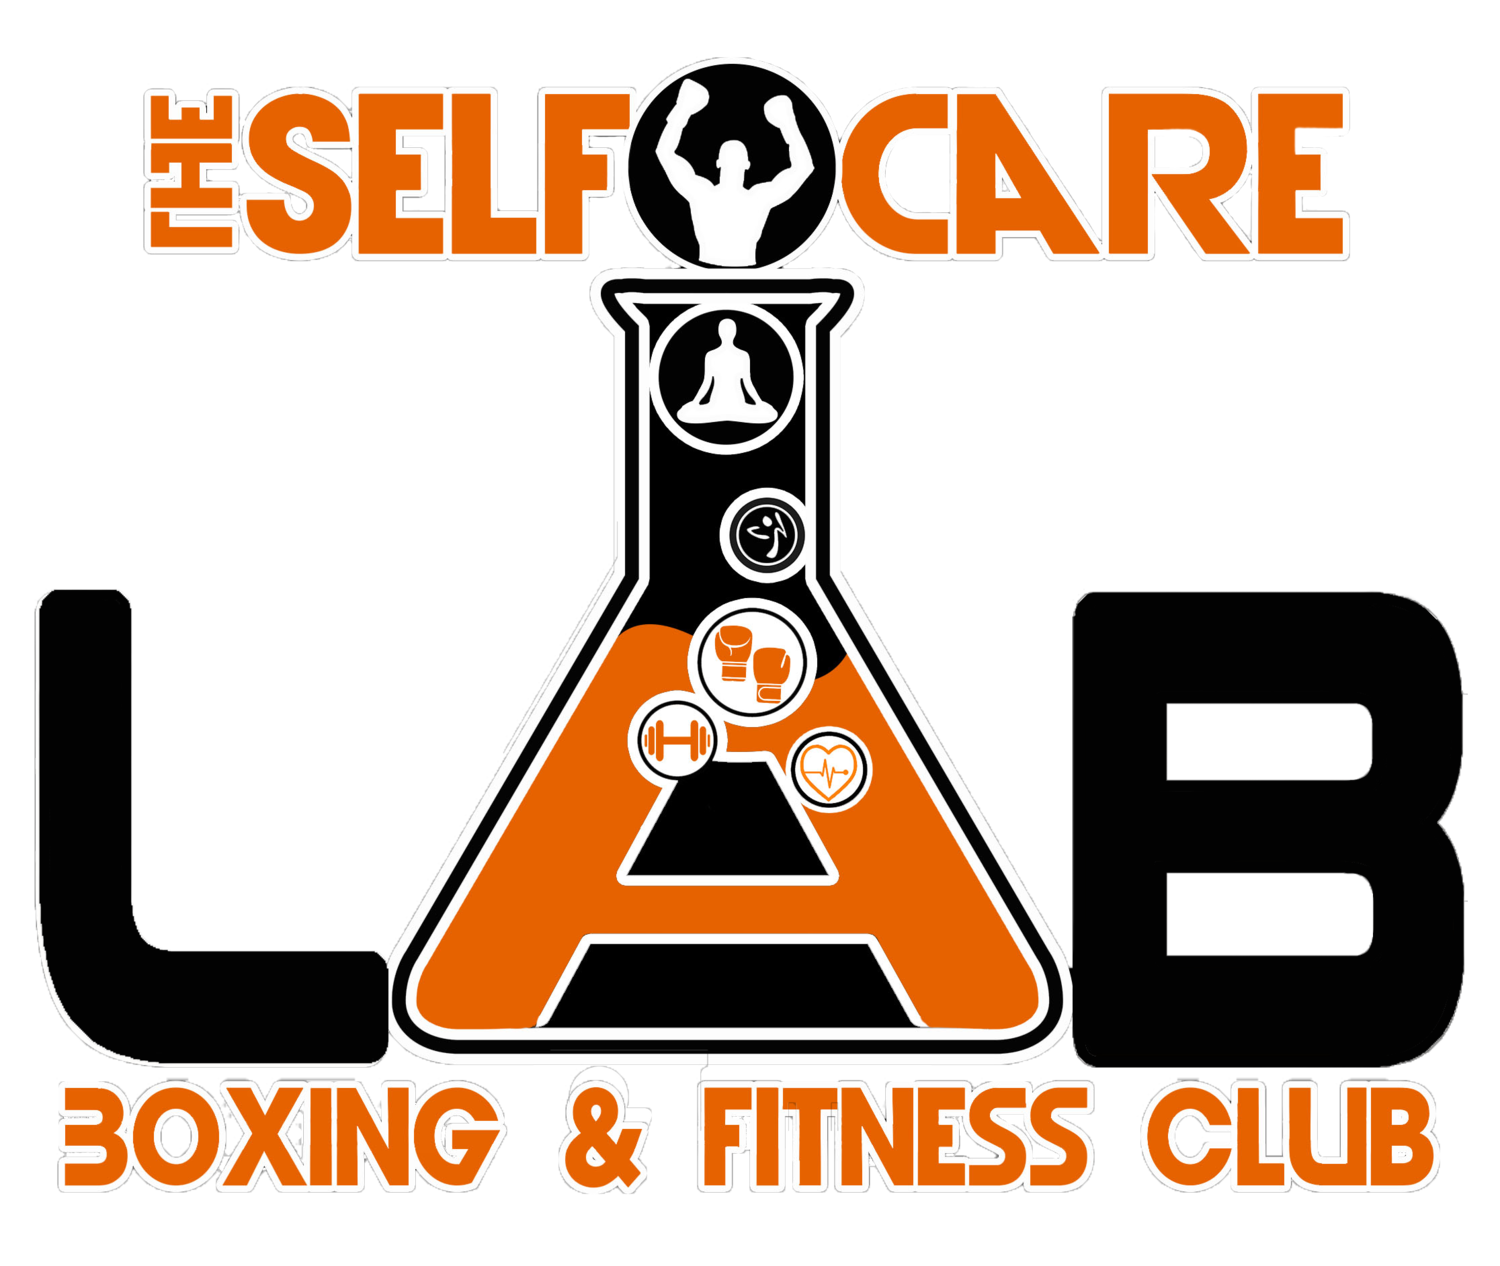 Gym clipart youth club. The self care lab